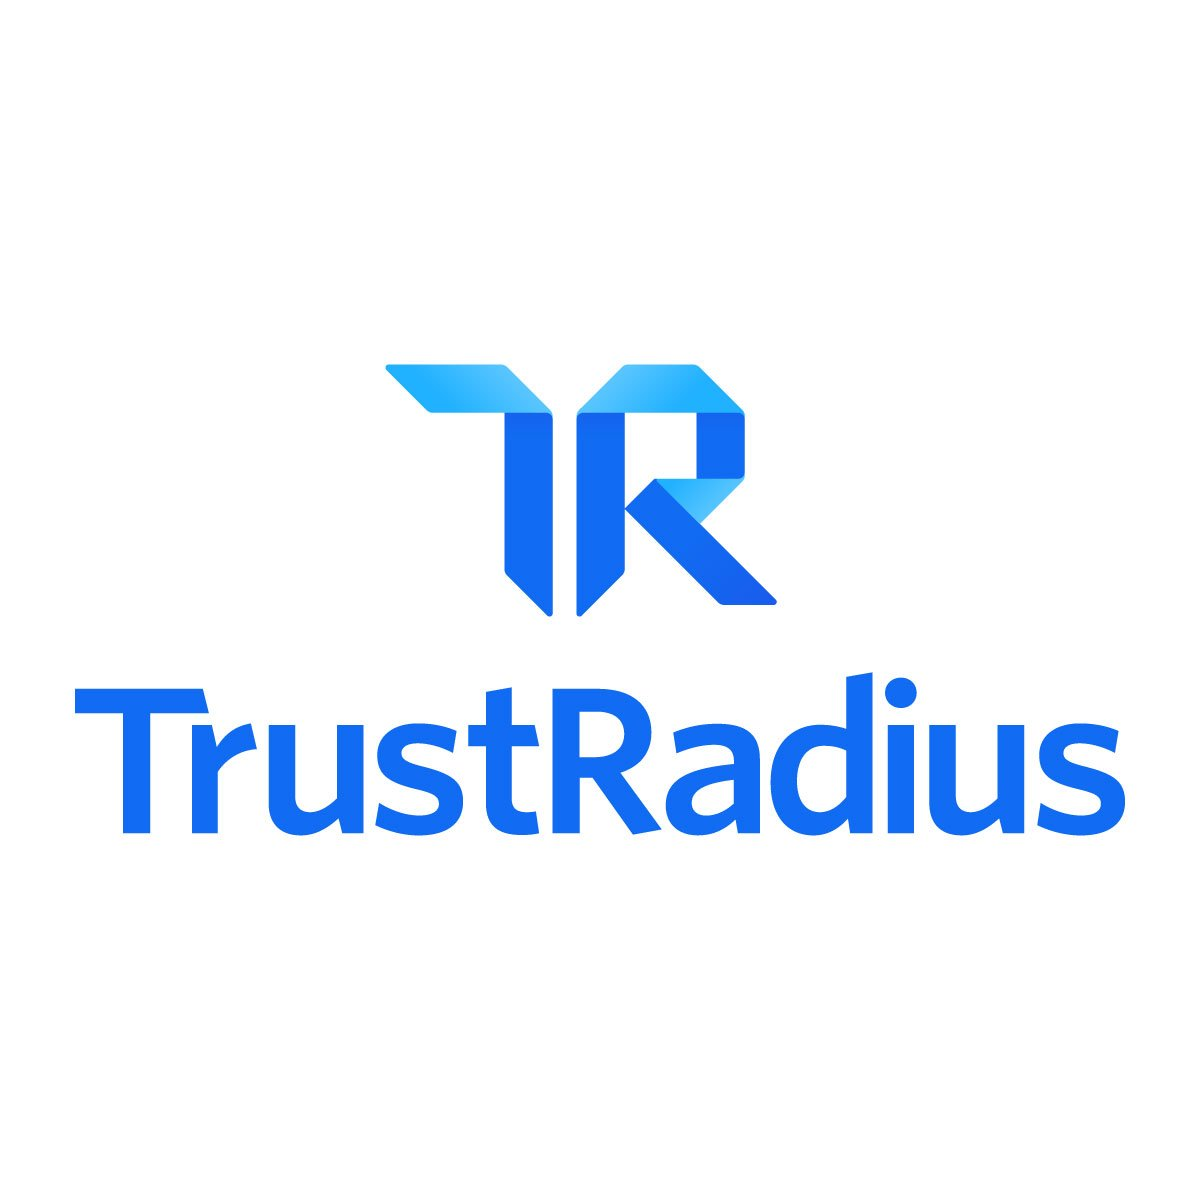 Comindware Tracker got to the Top Workflow Management Software at Trustradius